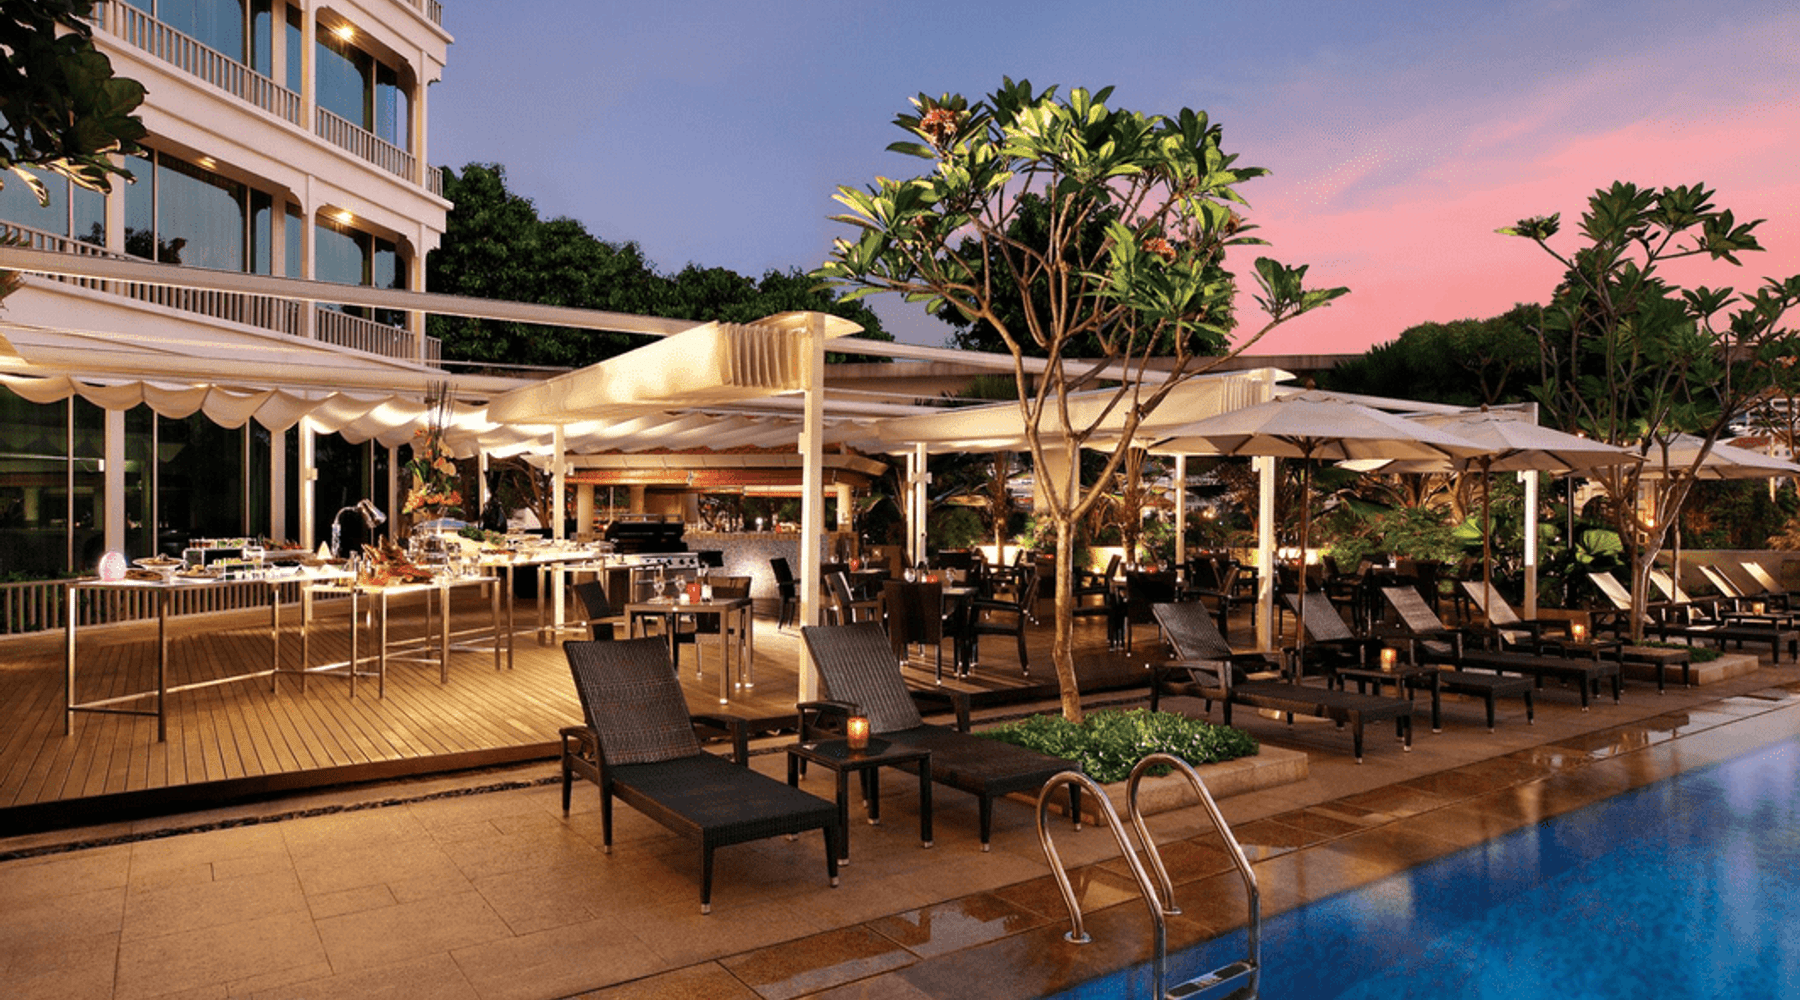 20 Top Spots for Alfresco Dining in Singapore